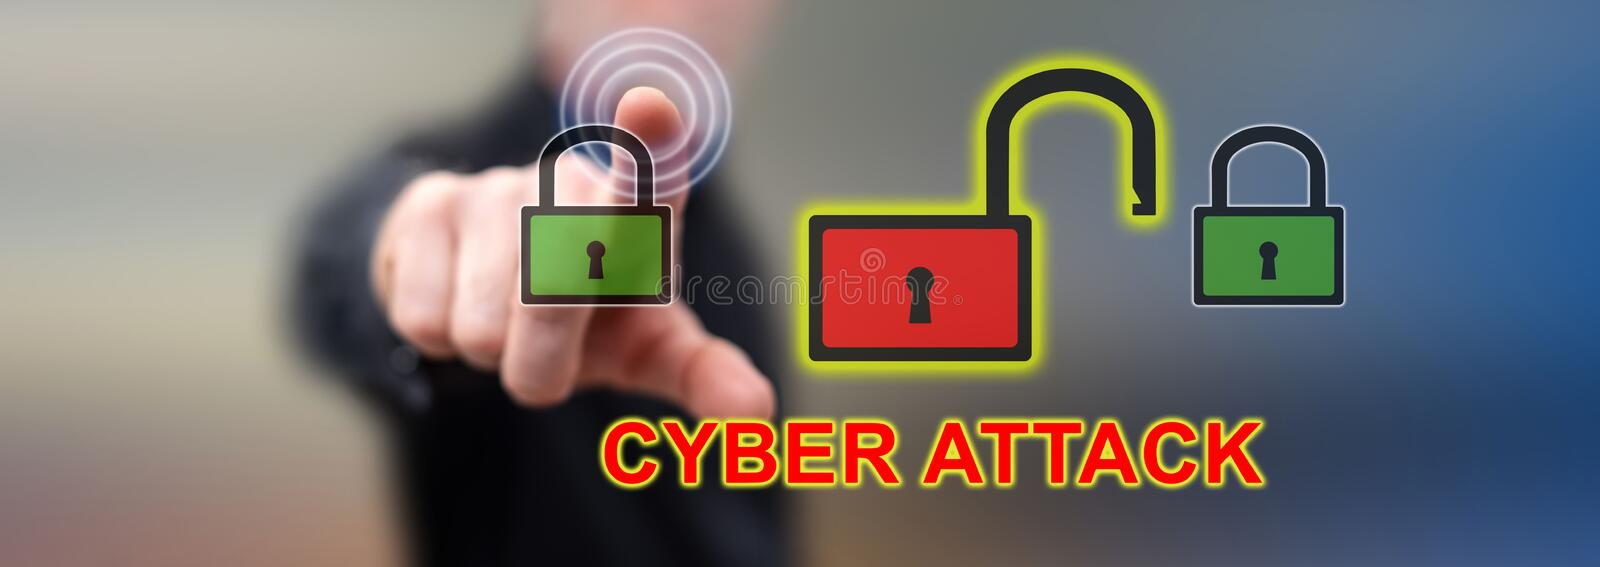 Man touching a cyber attack concept royalty free stock photo